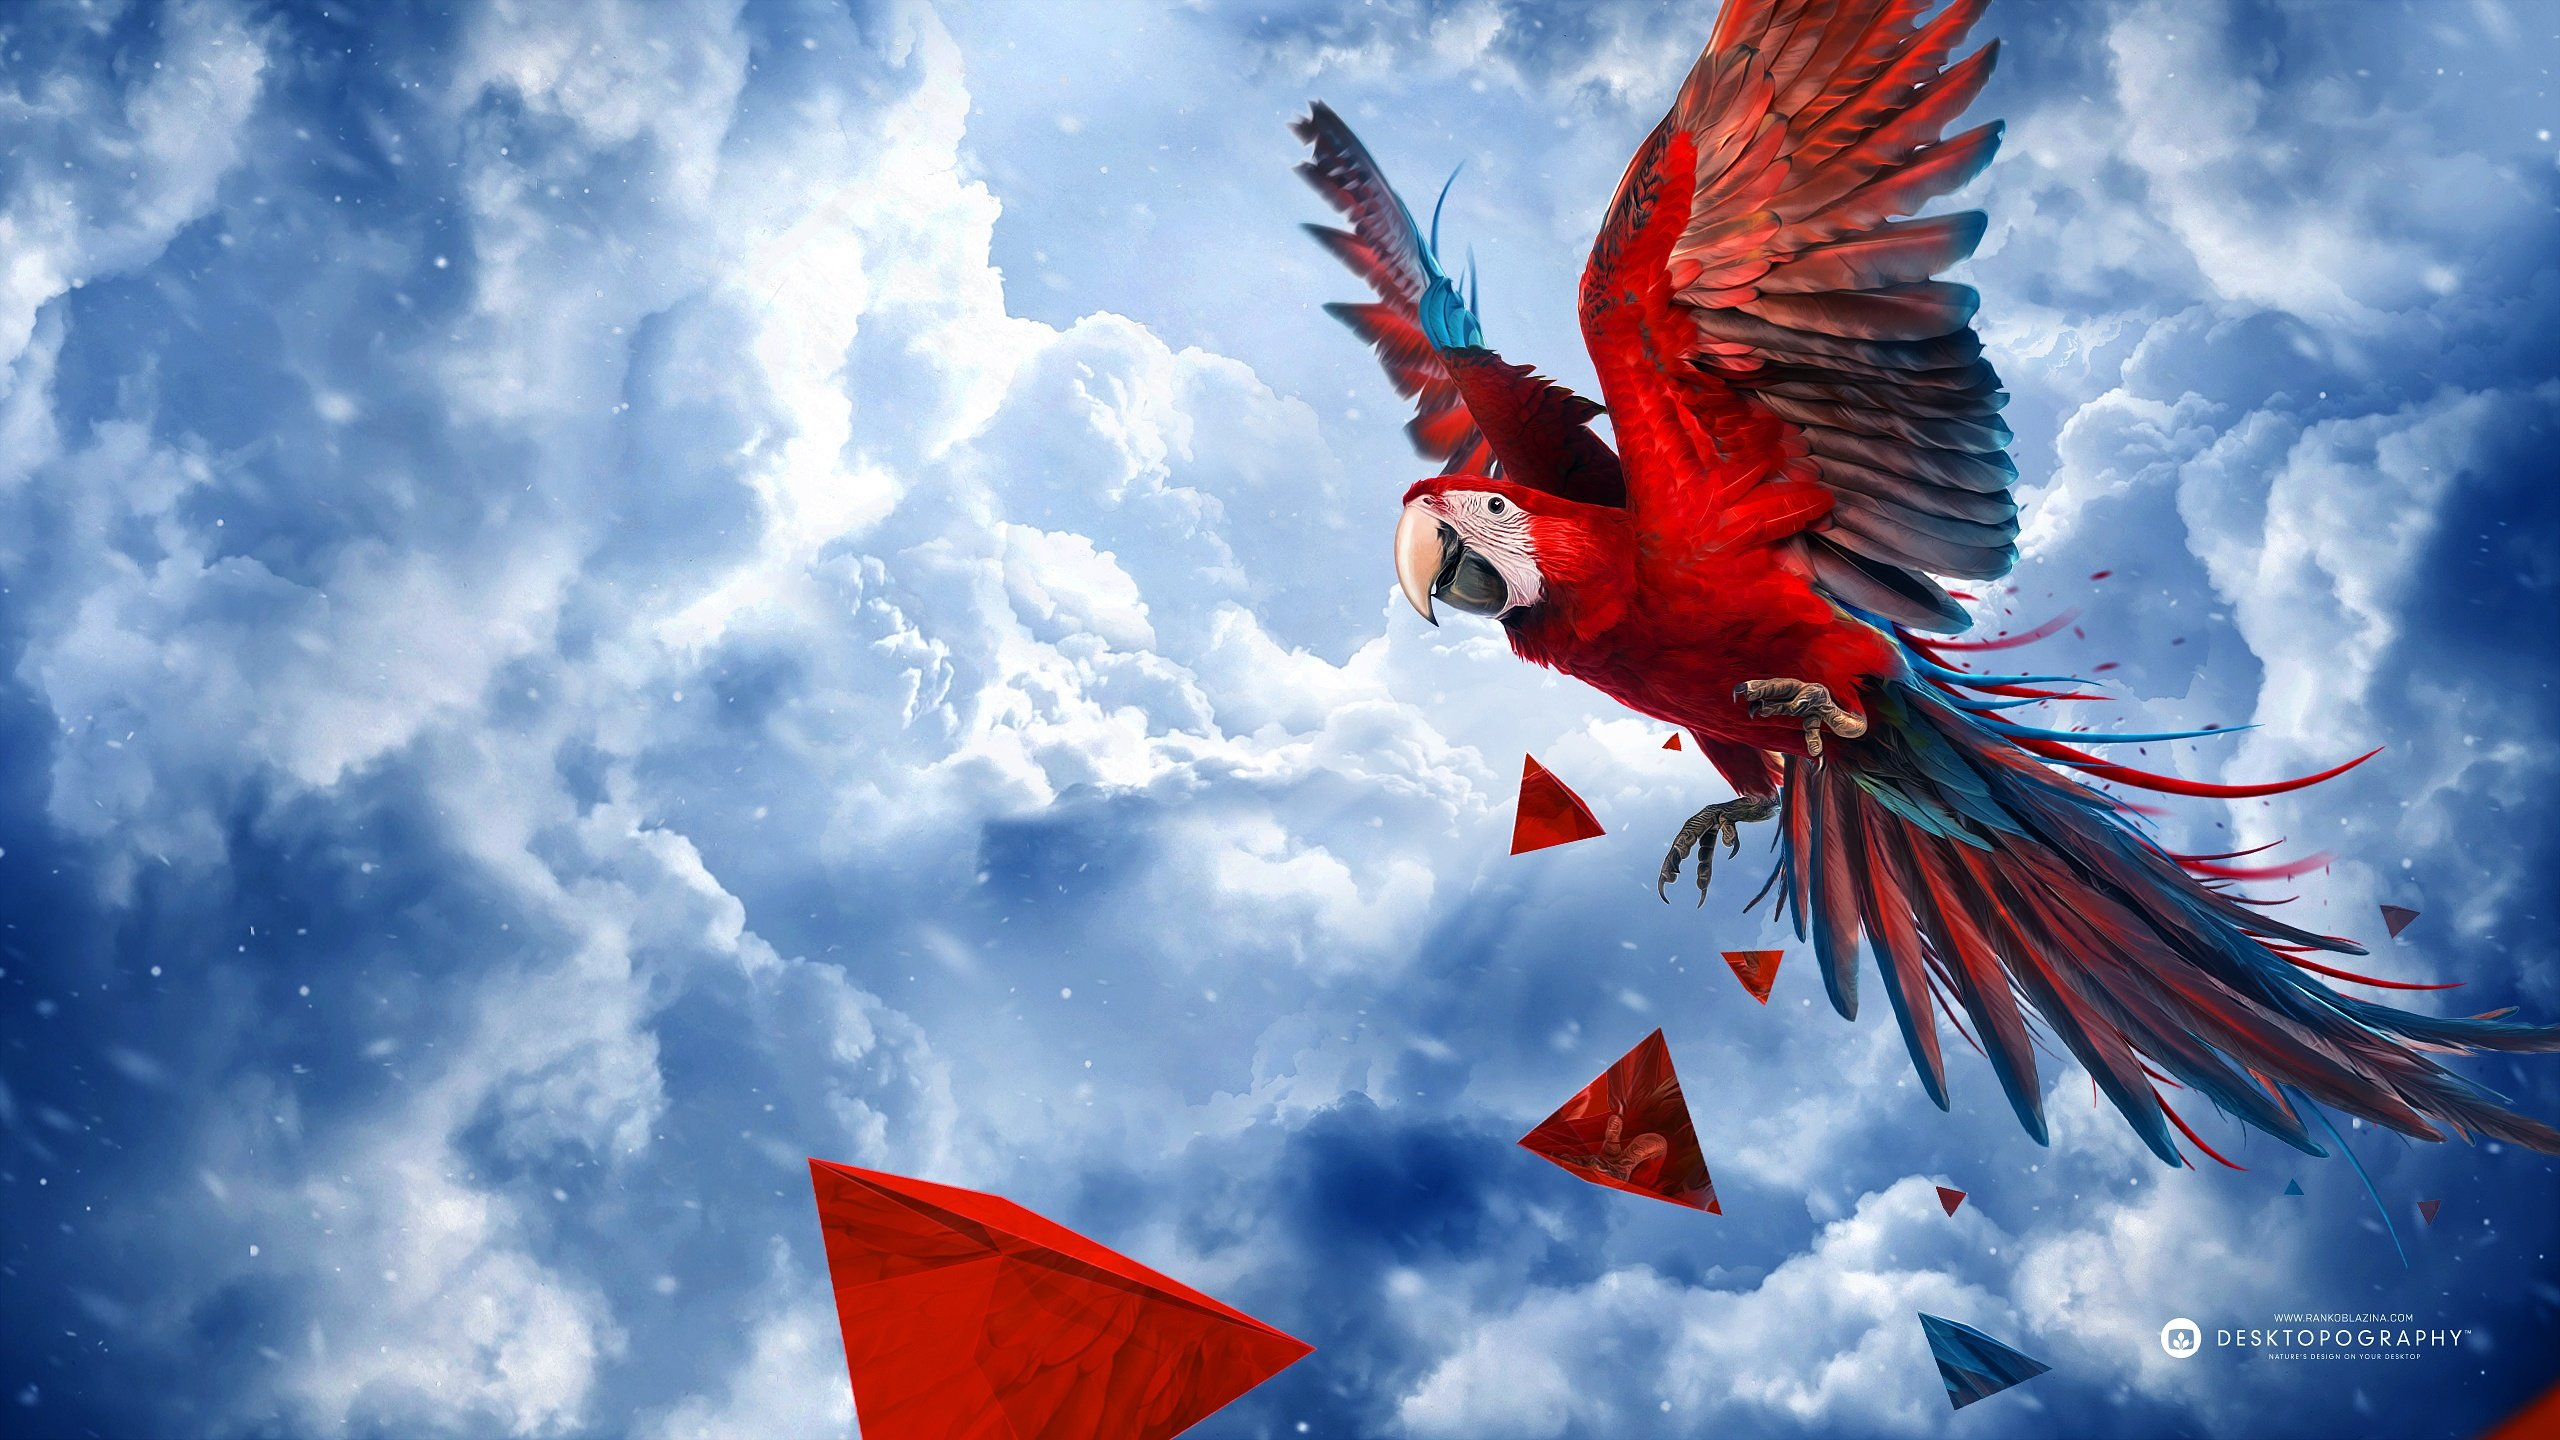 Download hd 2560x1440 Macaw desktop background ID:46377 for free